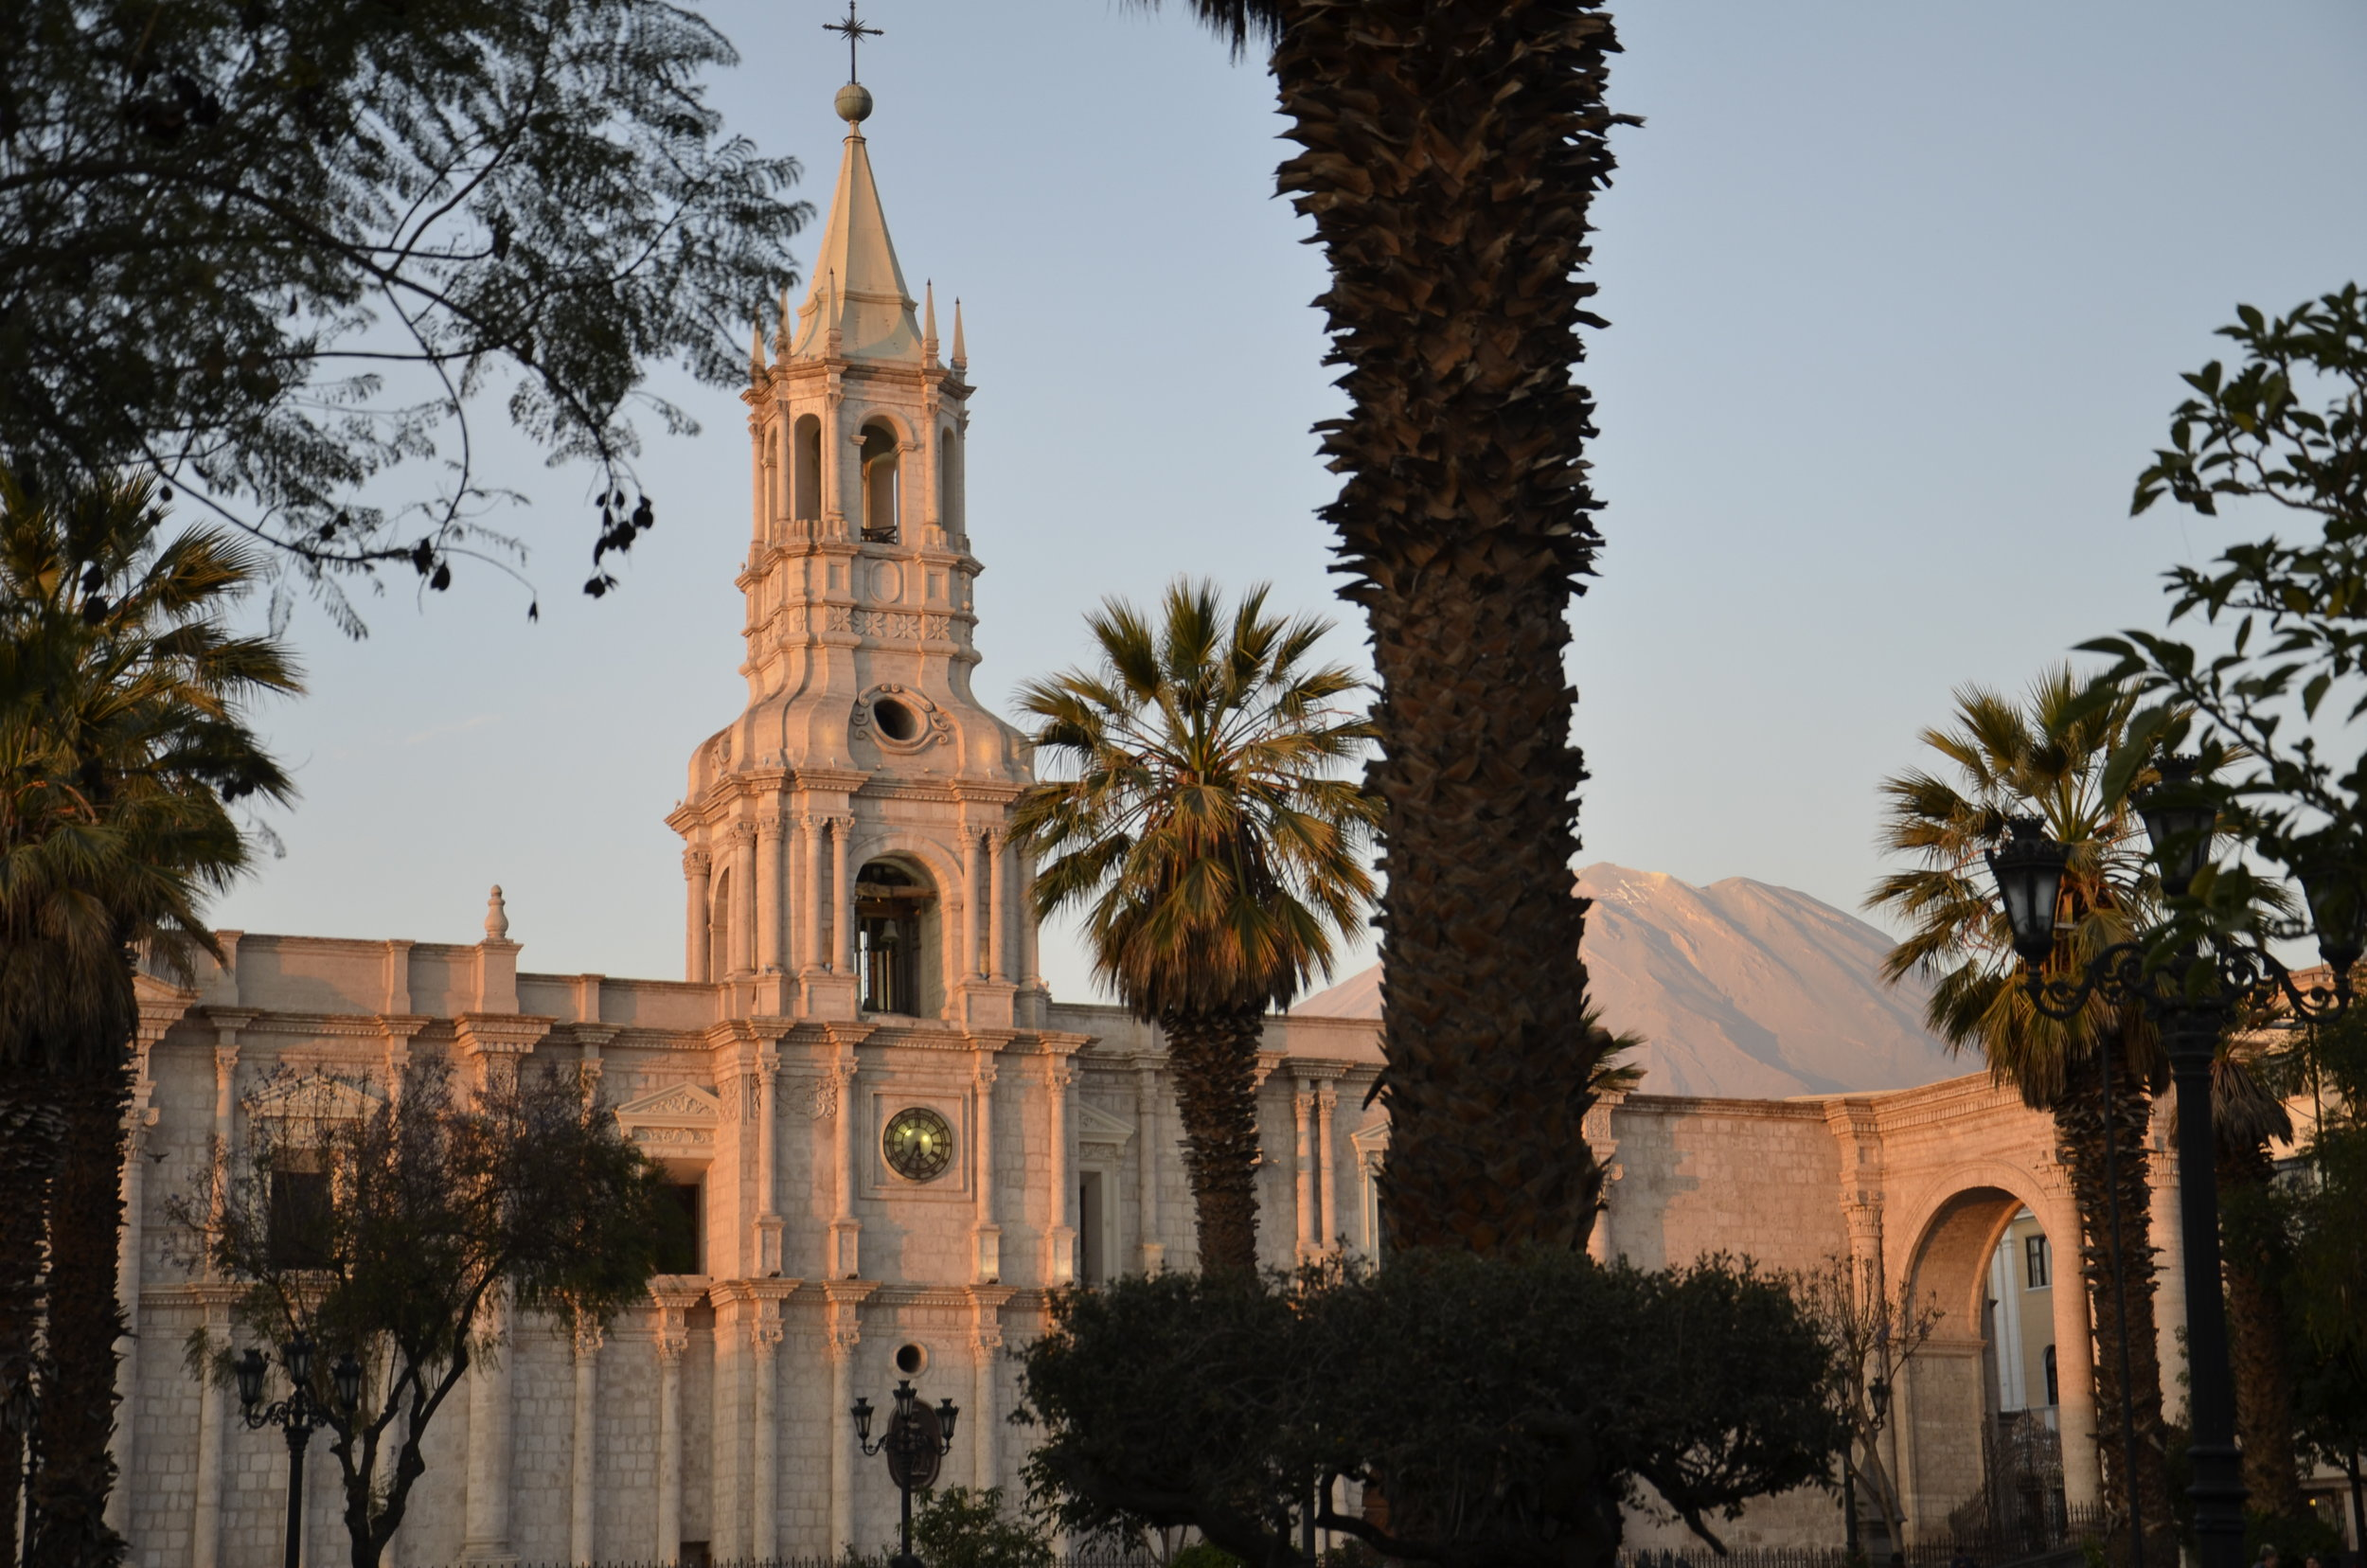 Sunset on the Cathedral in the Plaza